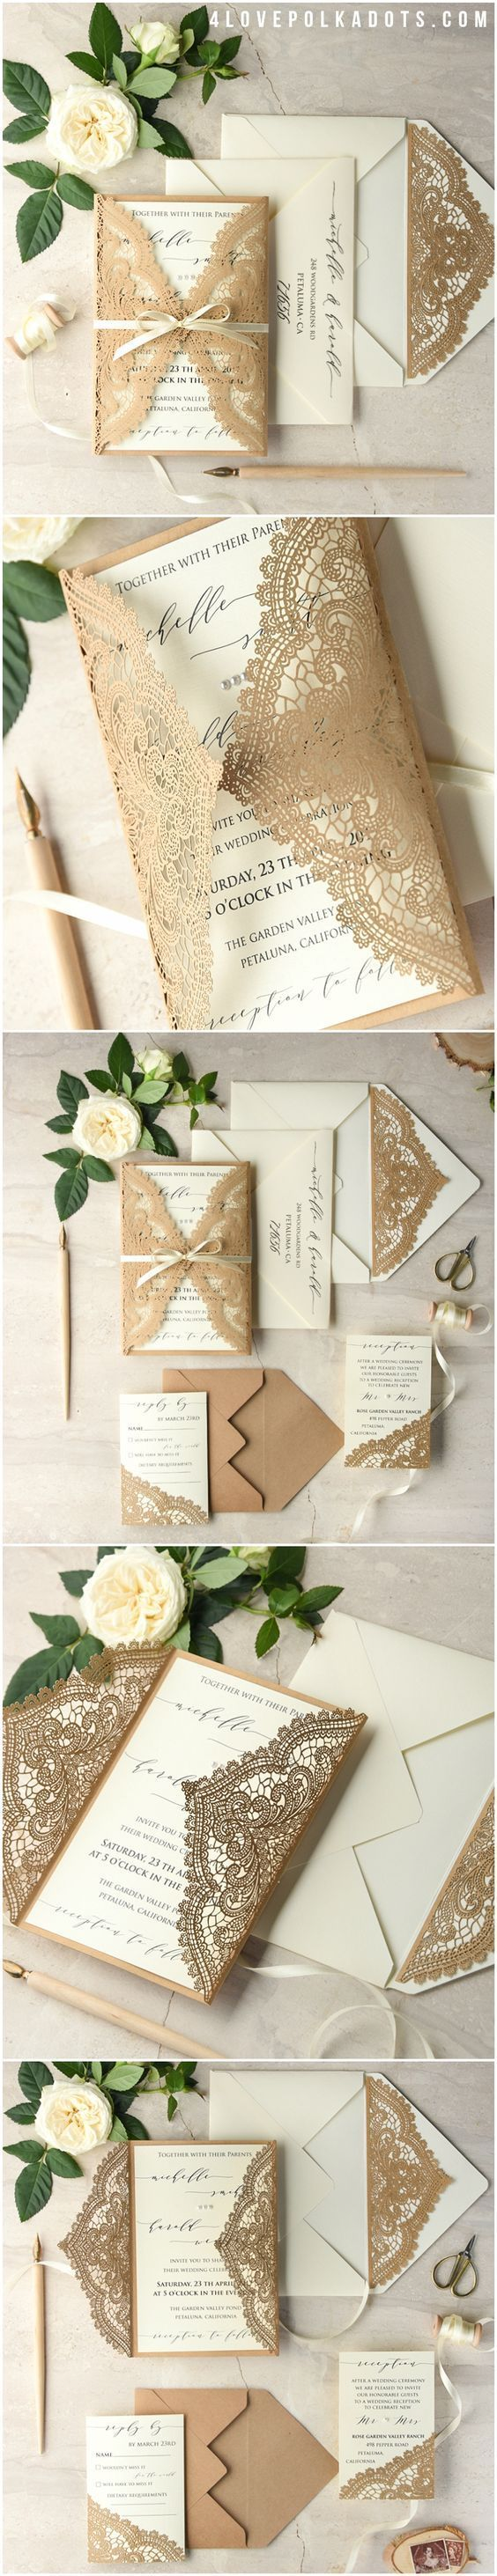 casual evening wedding invitation wording%0A Absolutely love this simplistic beige lace wedding invite with cream white  pages and simple white bow